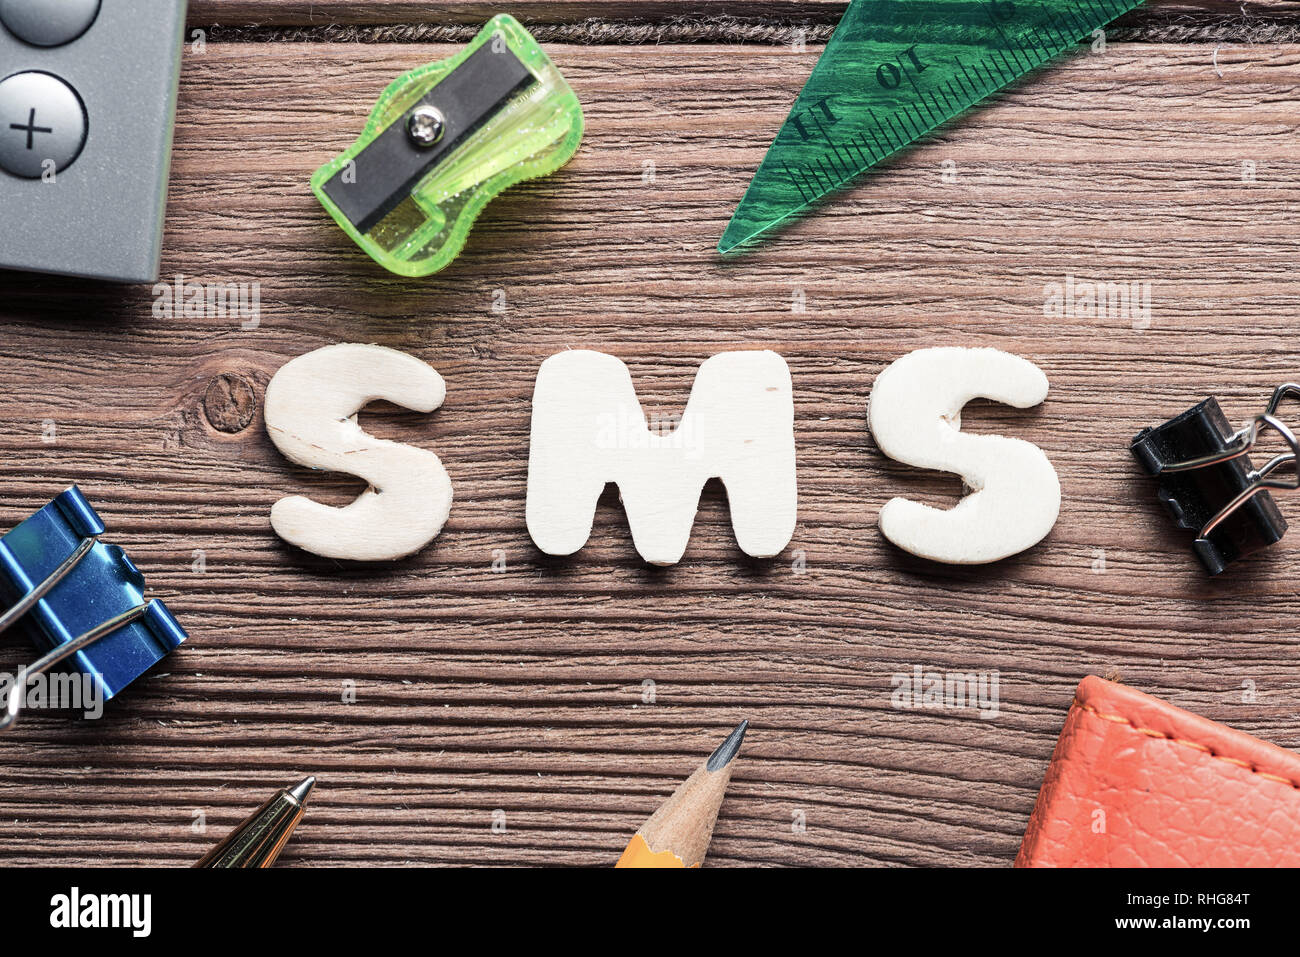 SMS word on wooden table and office stationary around - Stock Image